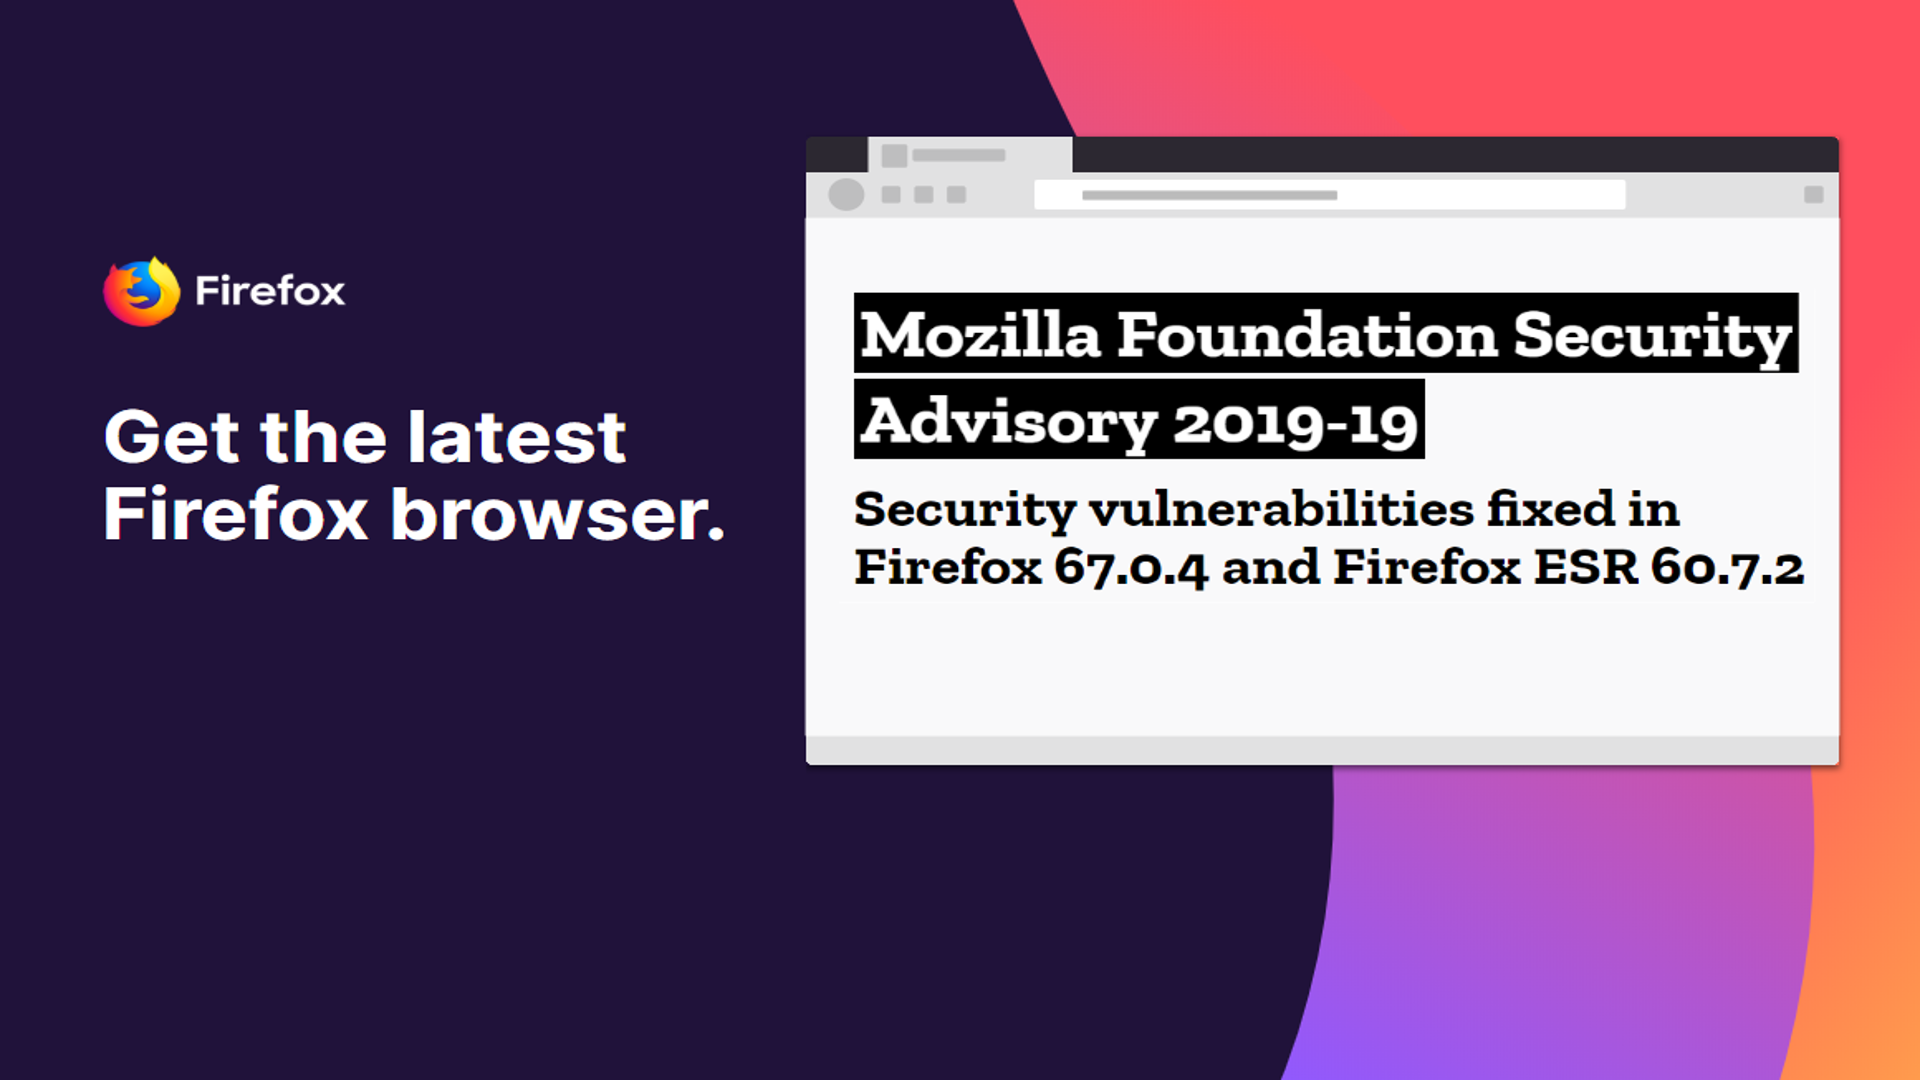 UpdateStar News | Firefox gets second security update within